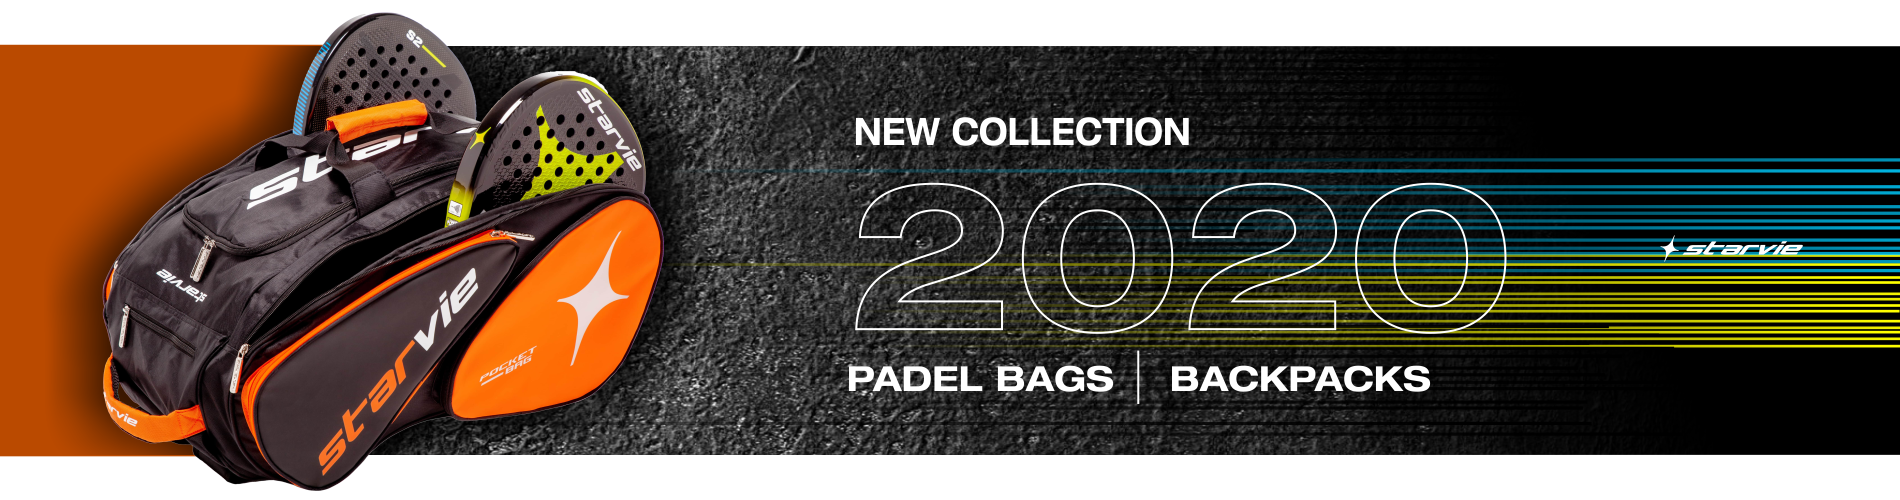 Padel Bags Collection 2020 StarVie